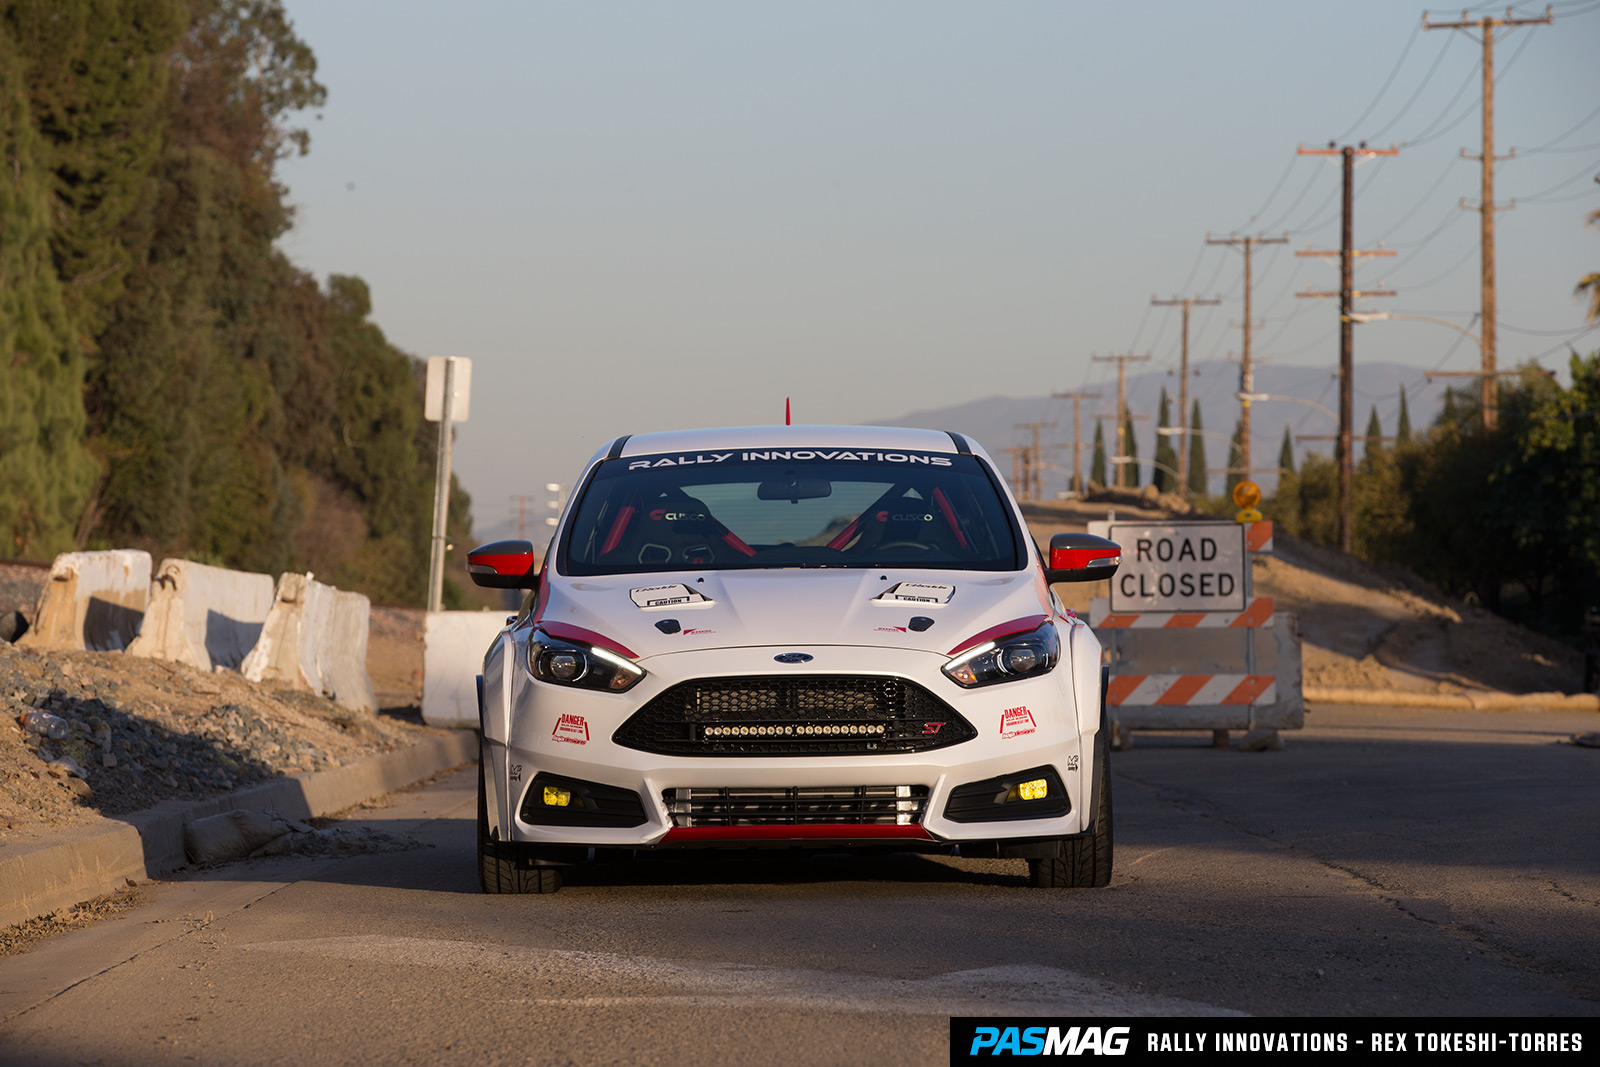 Rally Innovations 2015 Ford Focus ST Gundam PASMAG 1